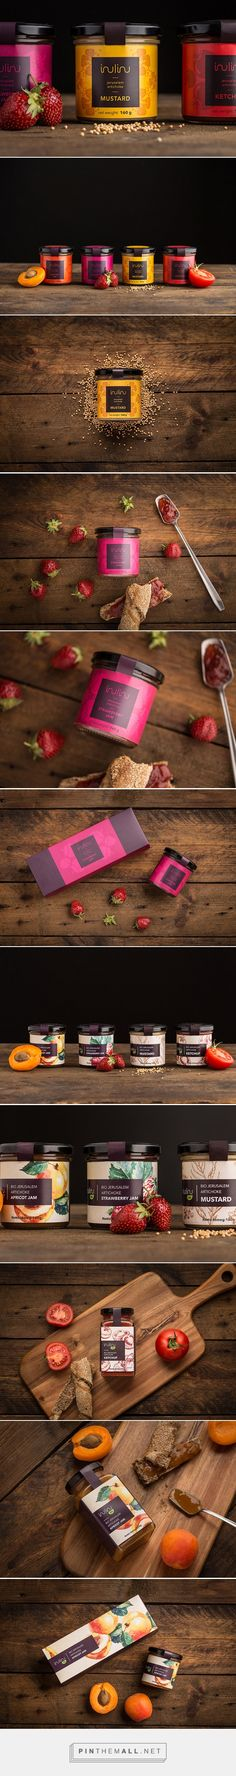 INULINU - mustards, ketchups and jams / design by DekoRatio Branding & Design Studio, Flora Seres, Ágnes Beke